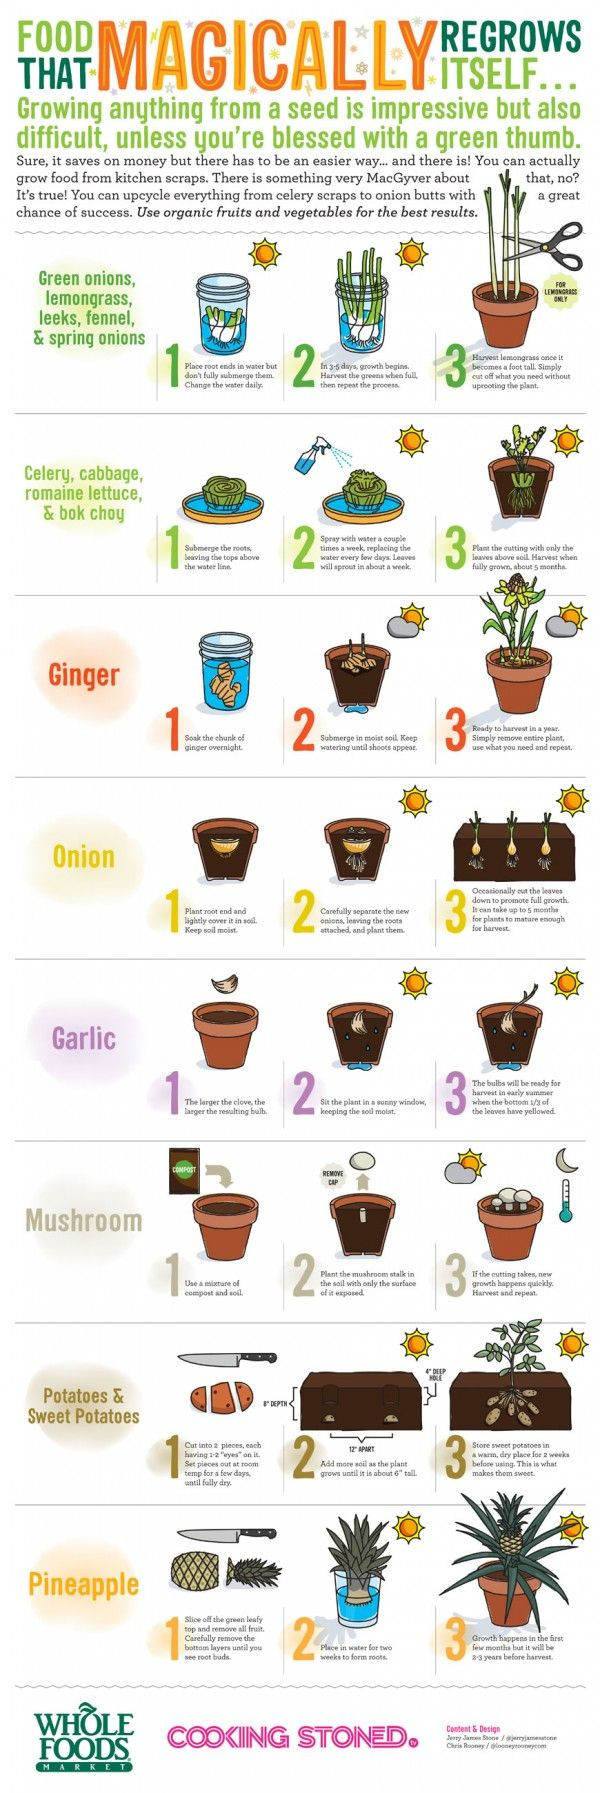 Food That Magically Regrows Itself from Kitchen Sc...